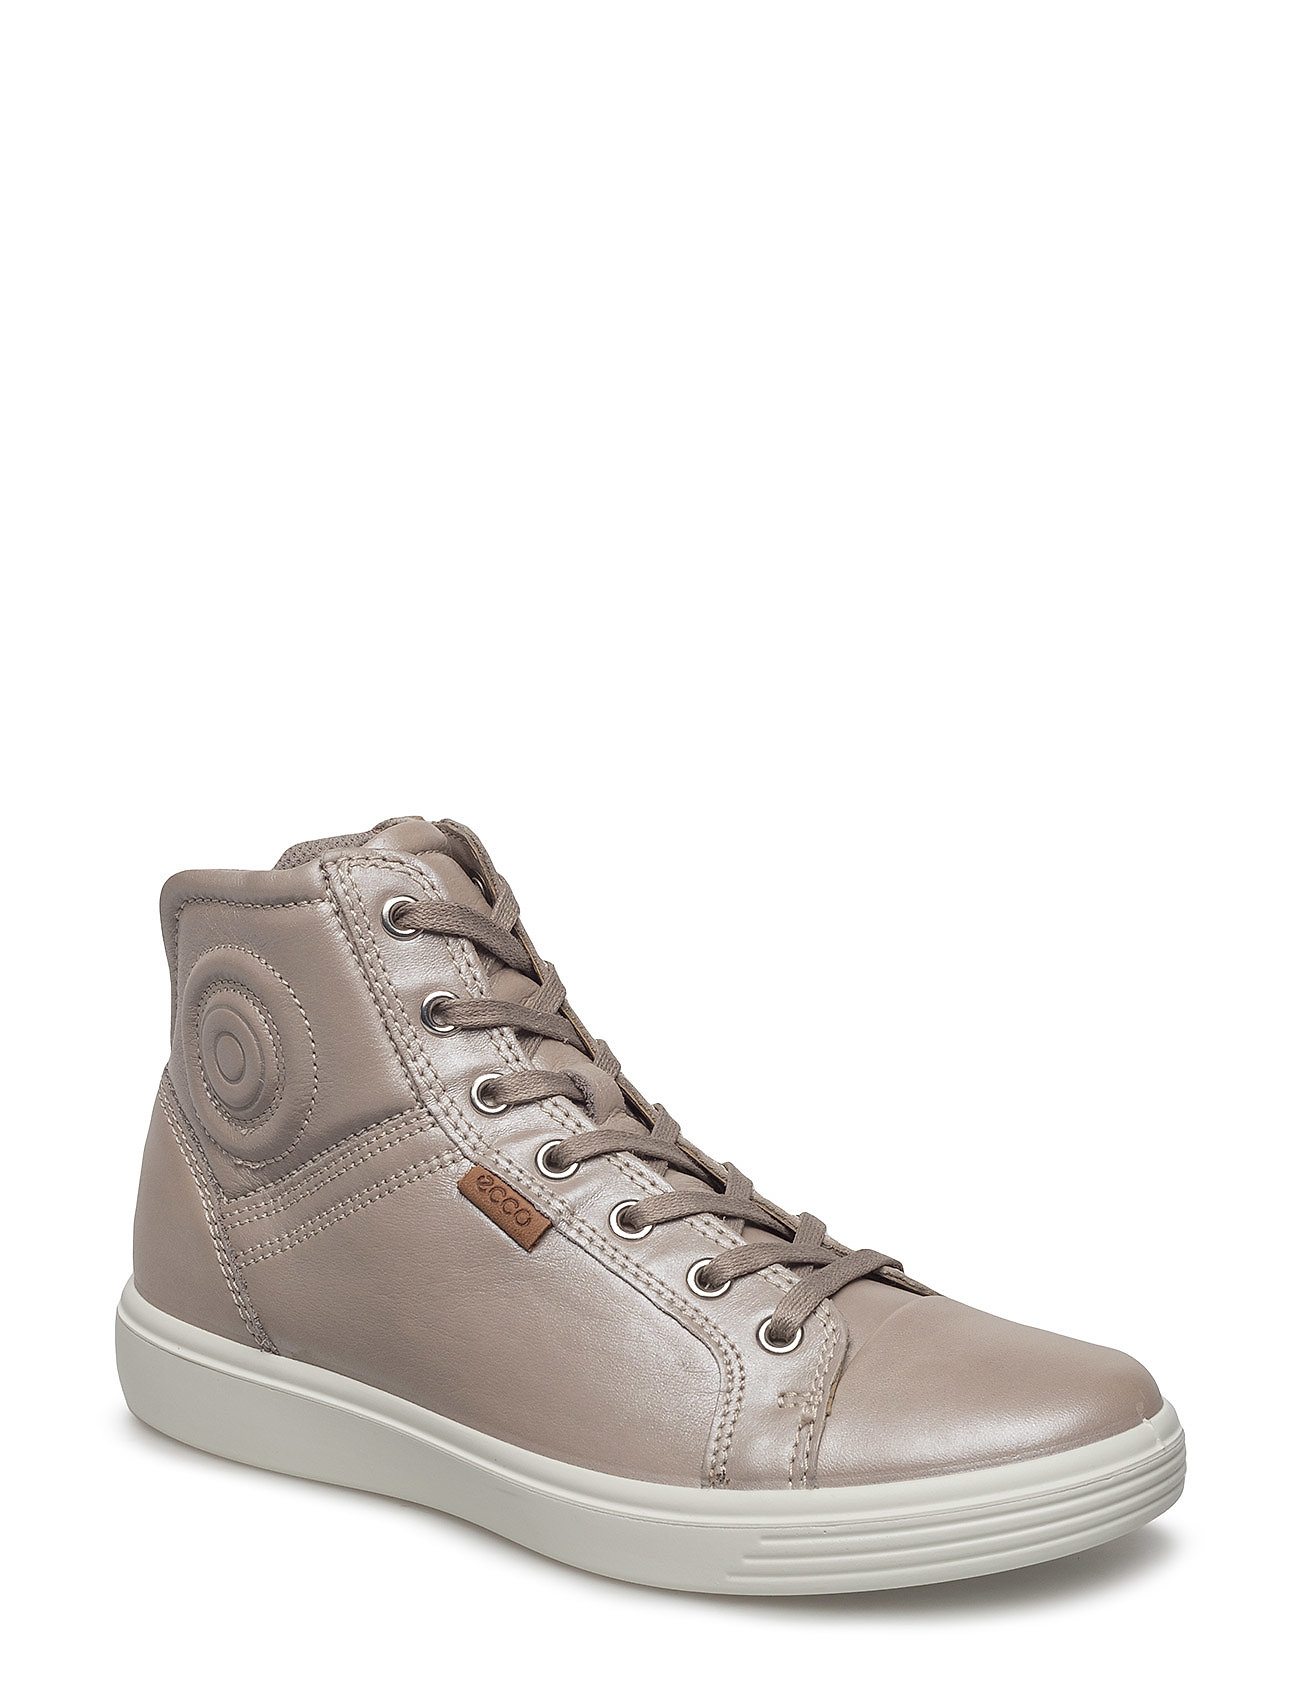 ECCO S7 TEEN - MOON ROCK/WHISKY